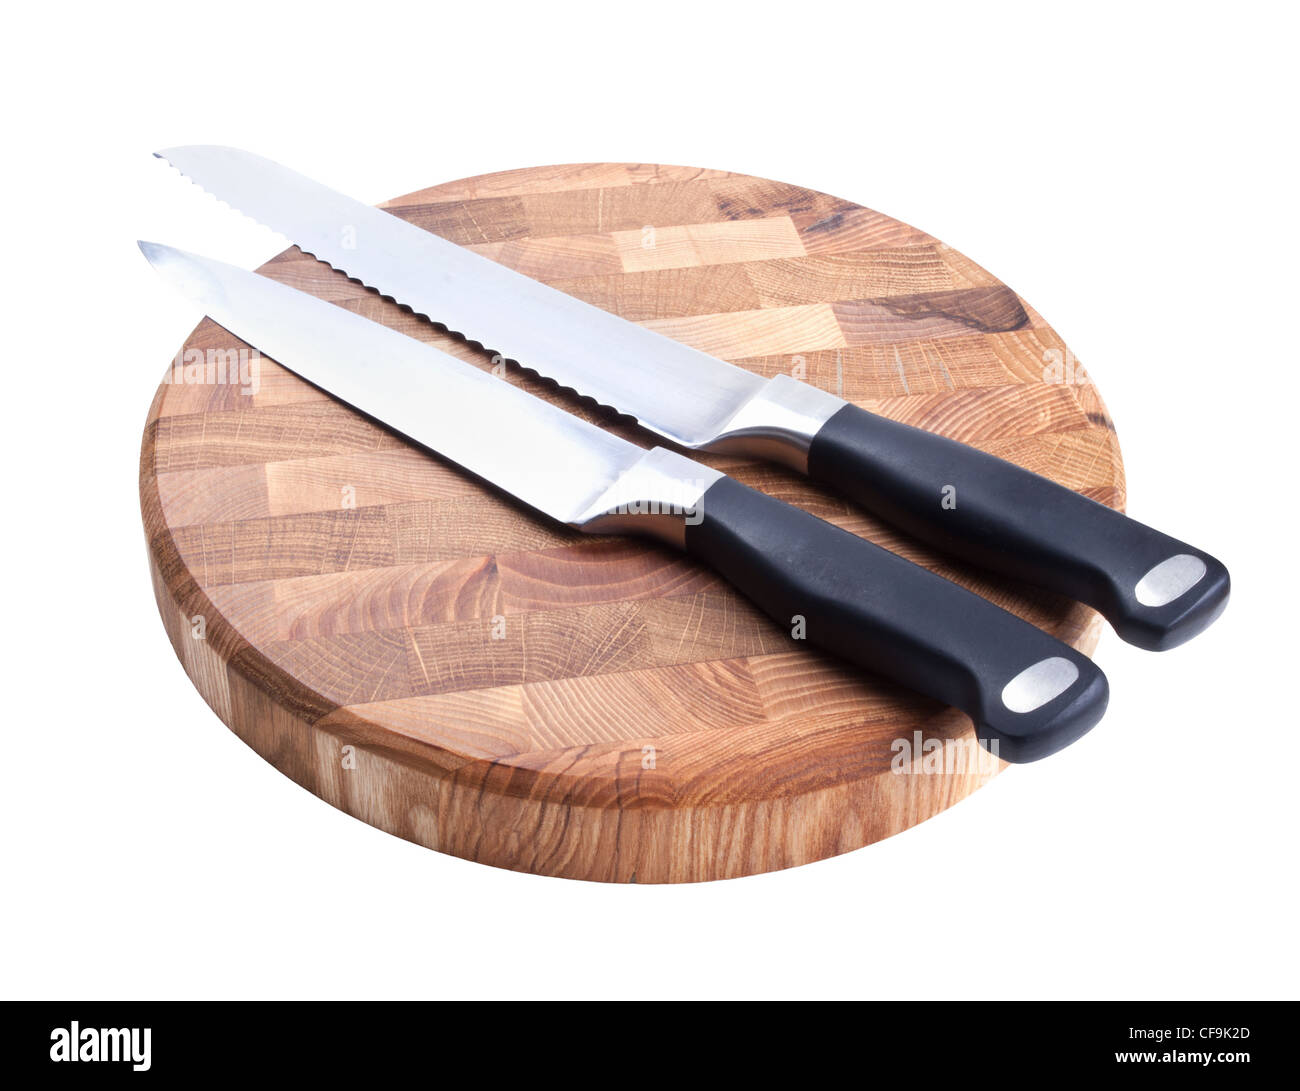 Two knives and wooden cutting board isolated on white background - Stock Image